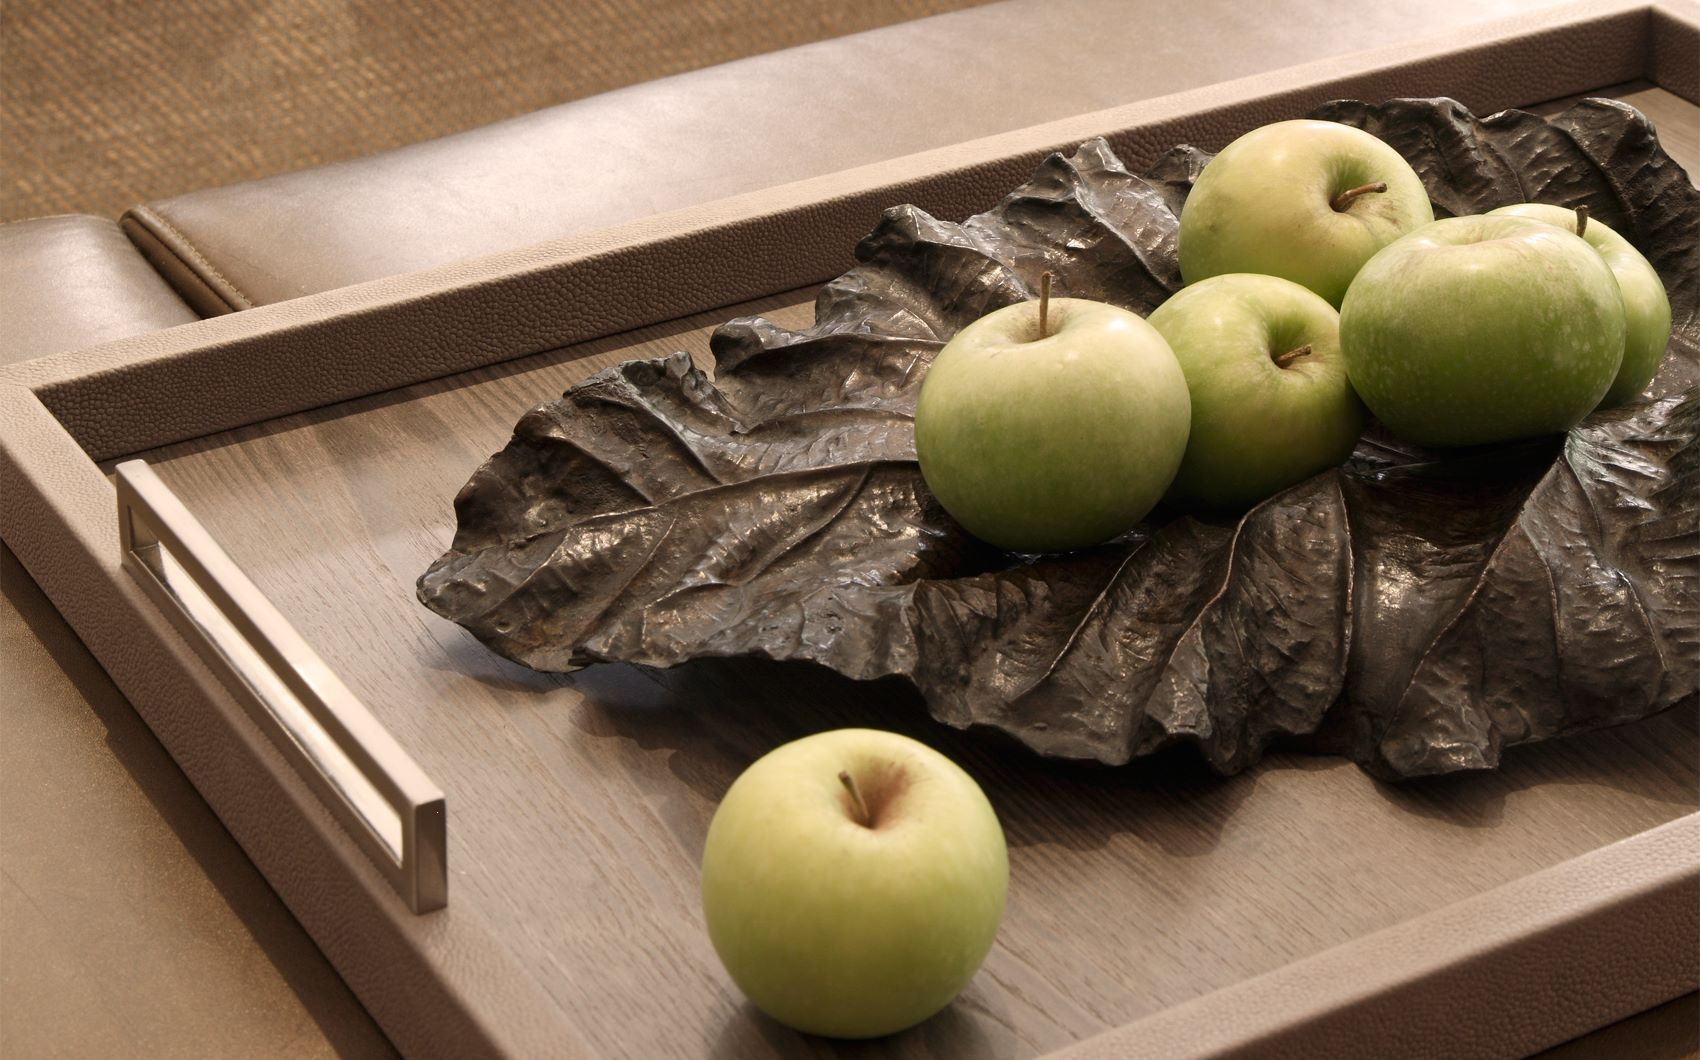 st georges hill - decorative tray with apples and leaf